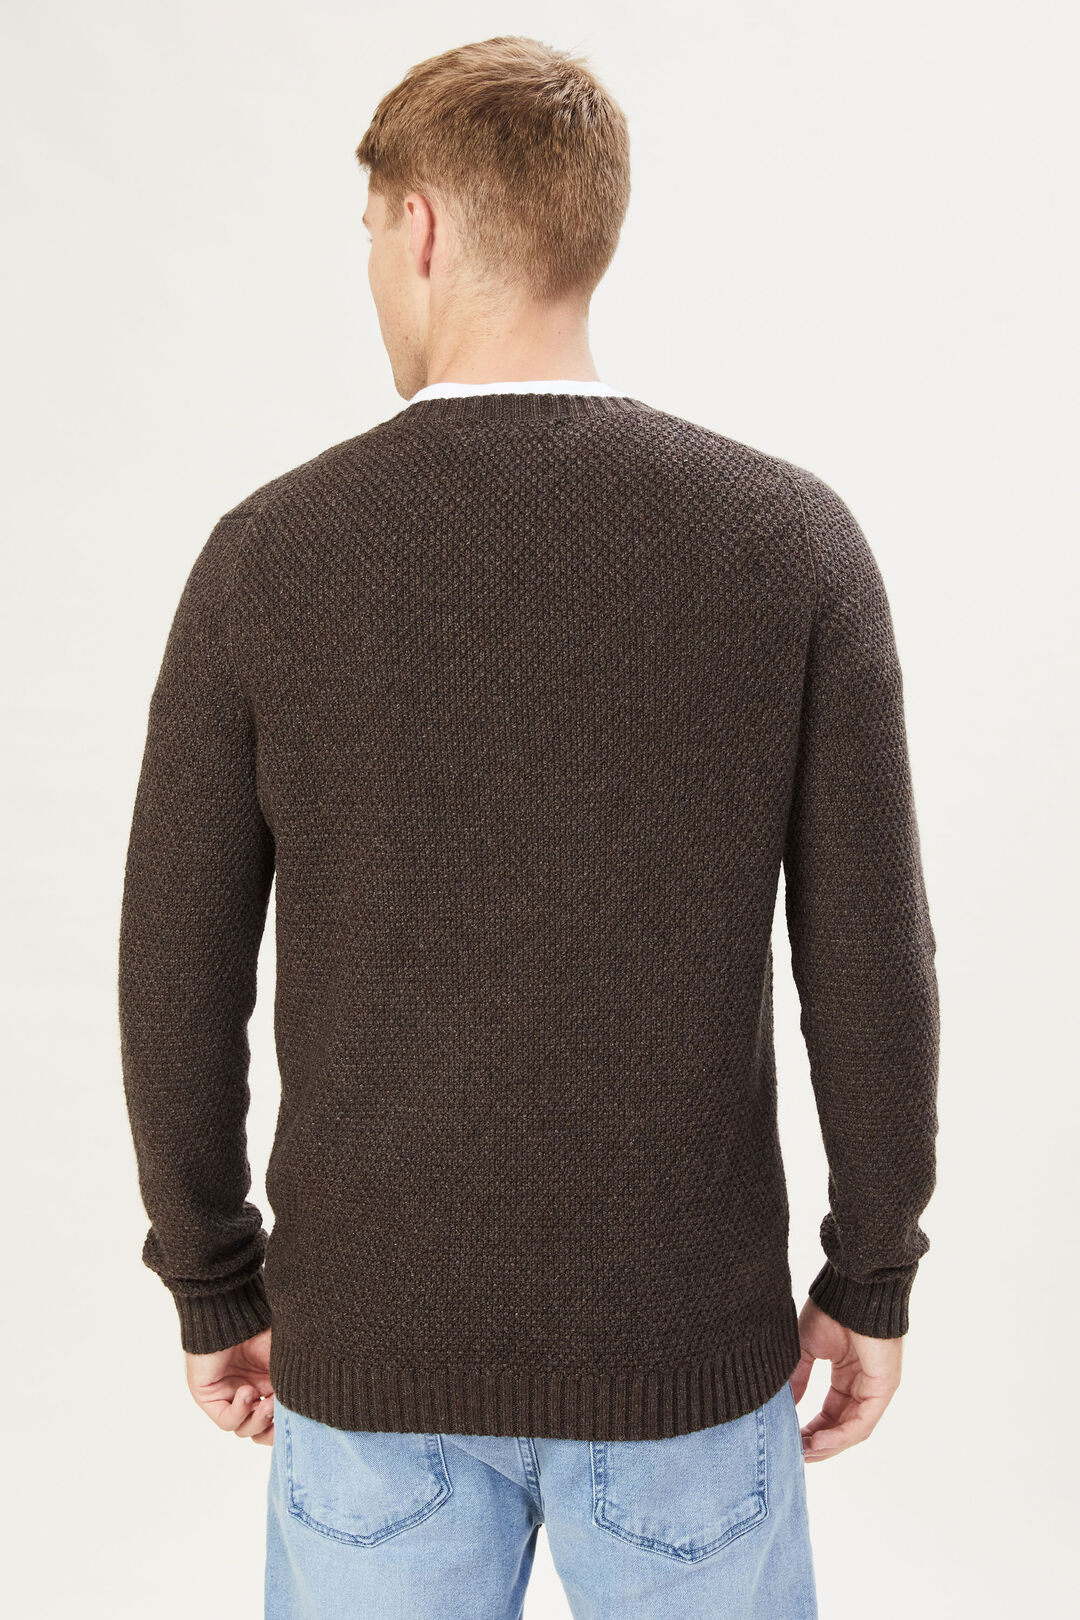 CHOCOLATE TEXTURED KNIT  CHOCOLATE  hi-res